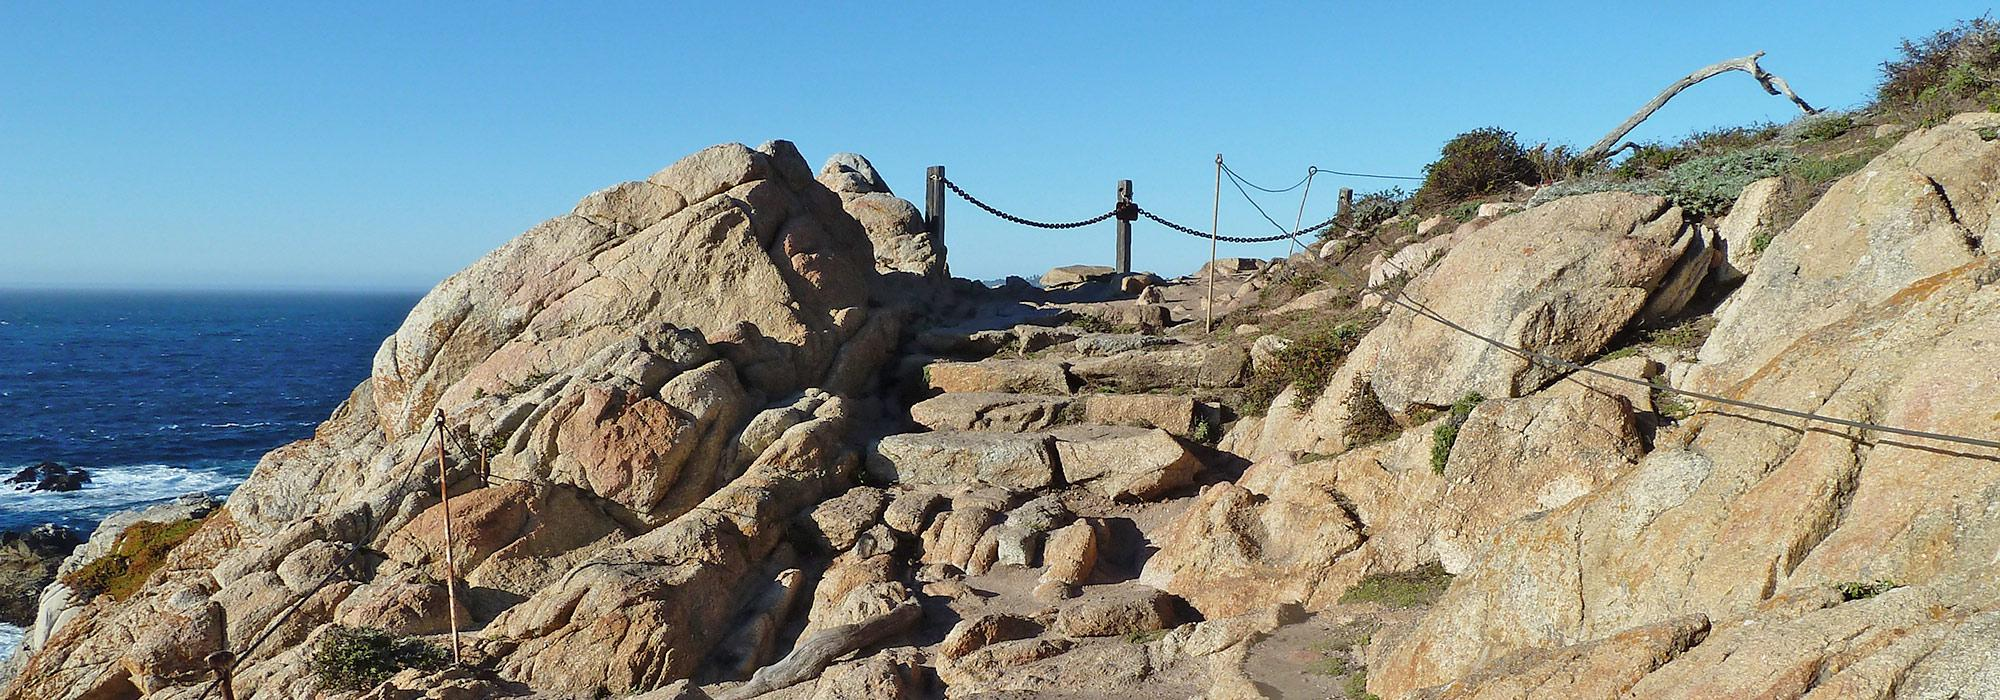 rocky path at Point Lobos